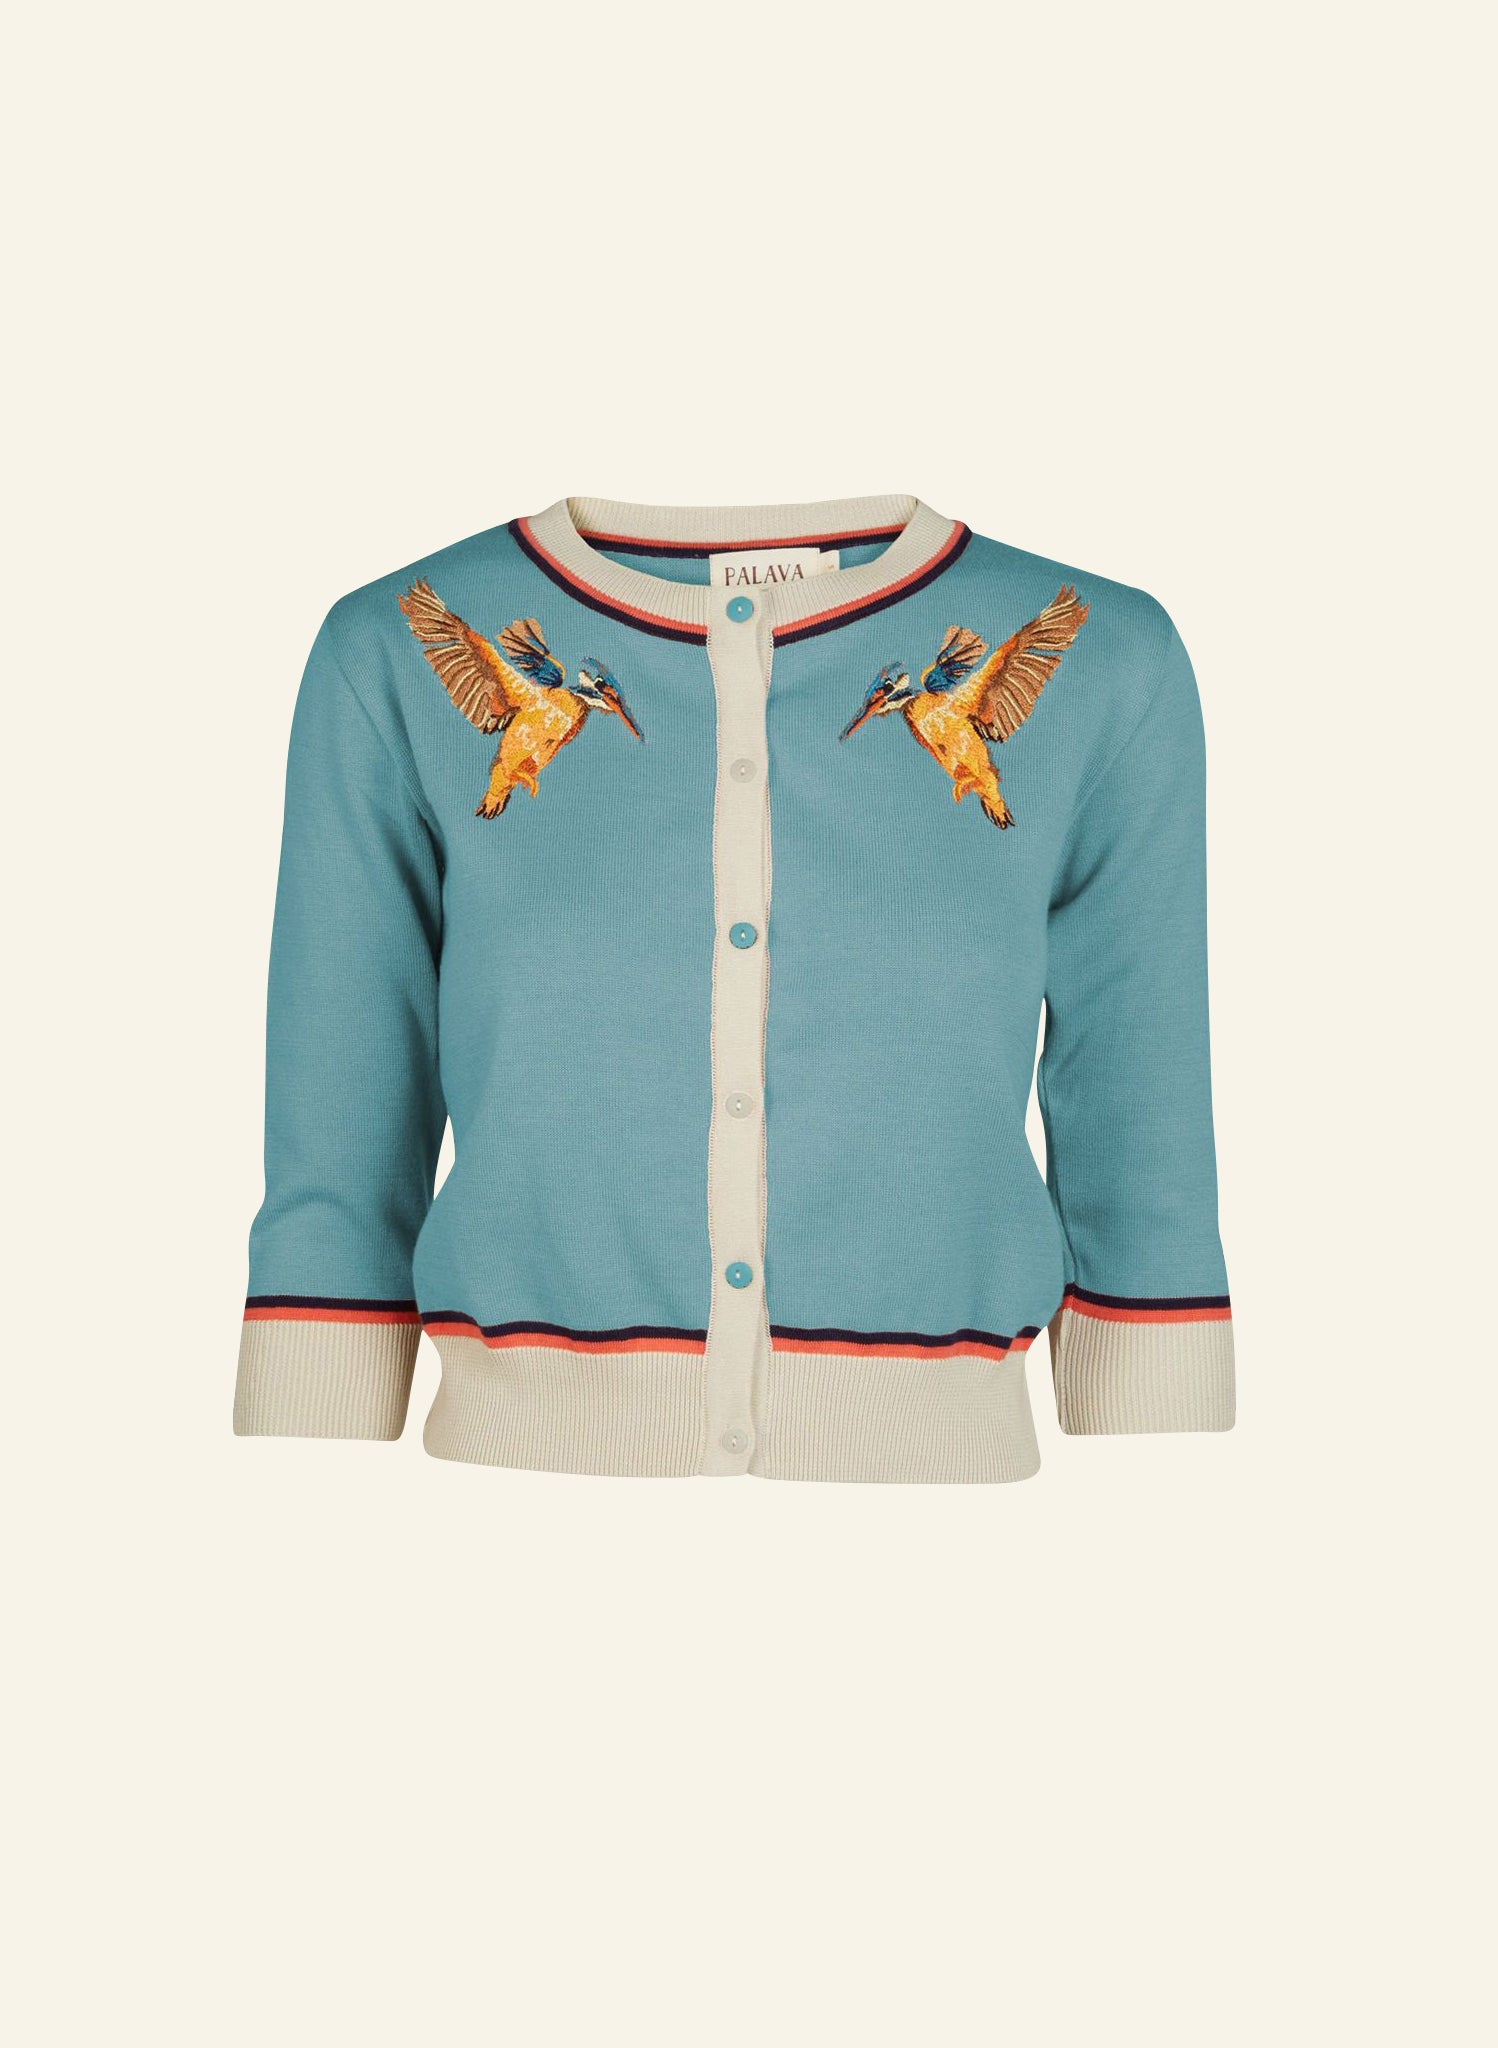 Vera - Teal Kingfisher - Organic Cotton Cardigan